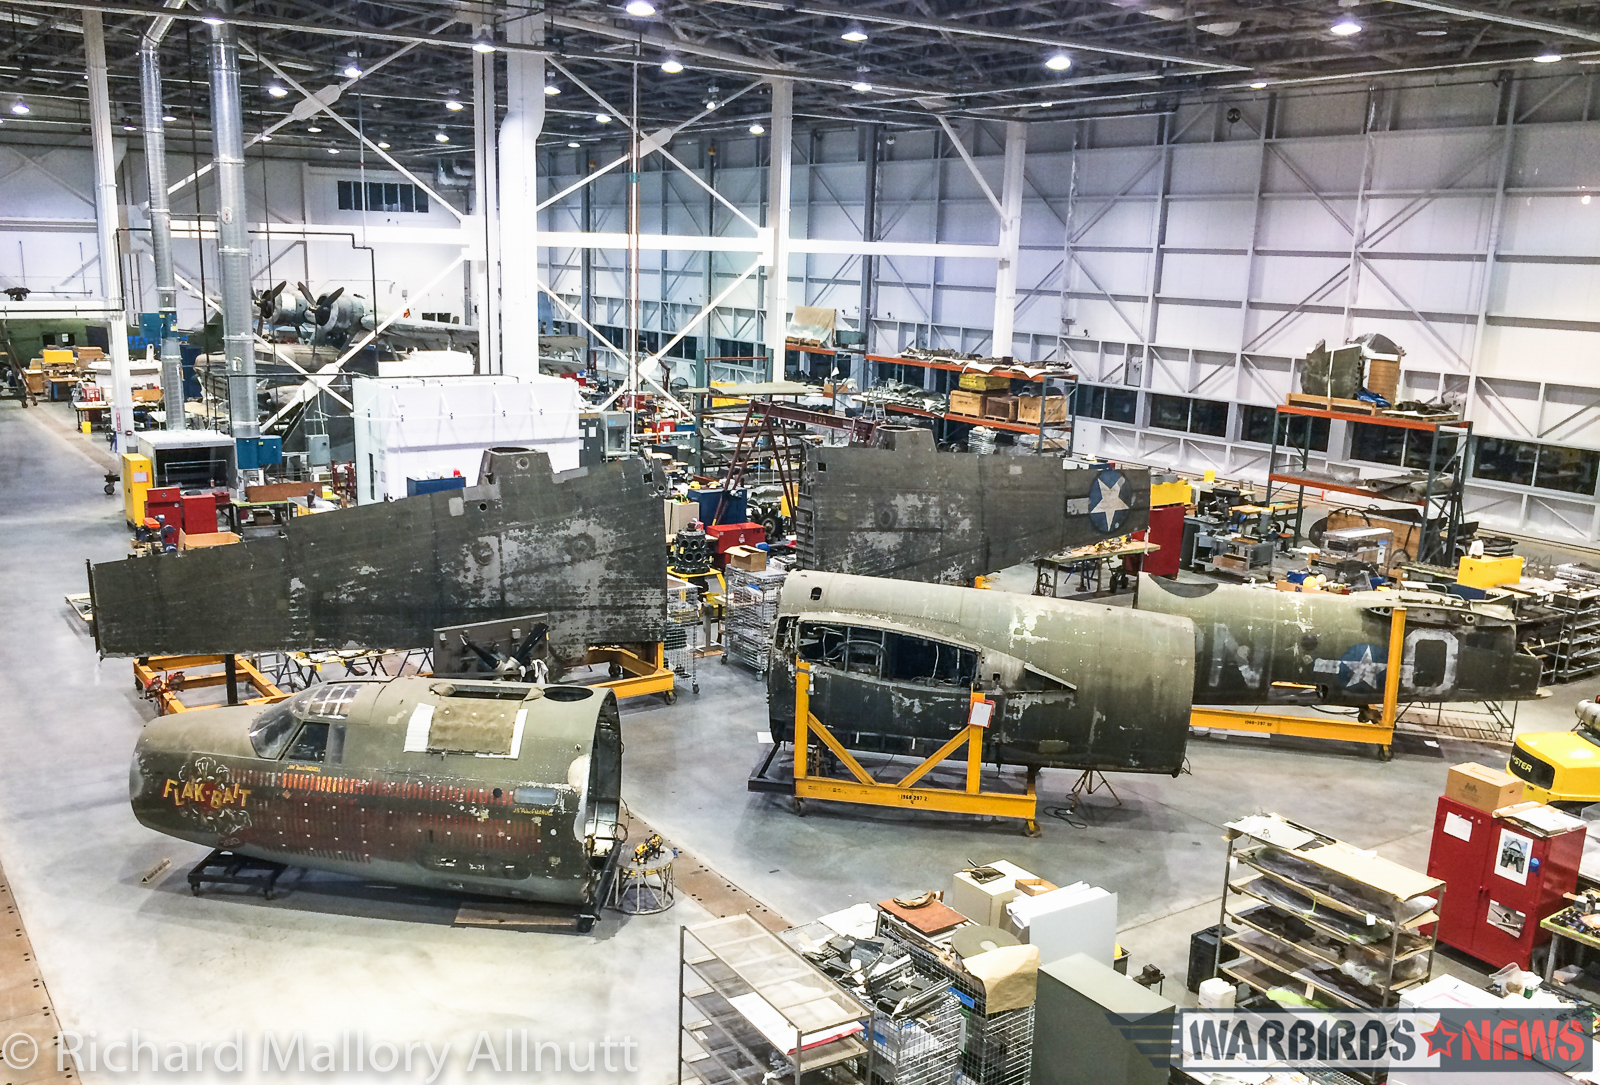 "Martin B-26 Marauder ""Flak Bait"" shown here in a recent image, will be one of the major exhibits visitors to NASM's Open House on January 30th will get to see up close and personal. (photo by Richard Mallory Allnutt)"